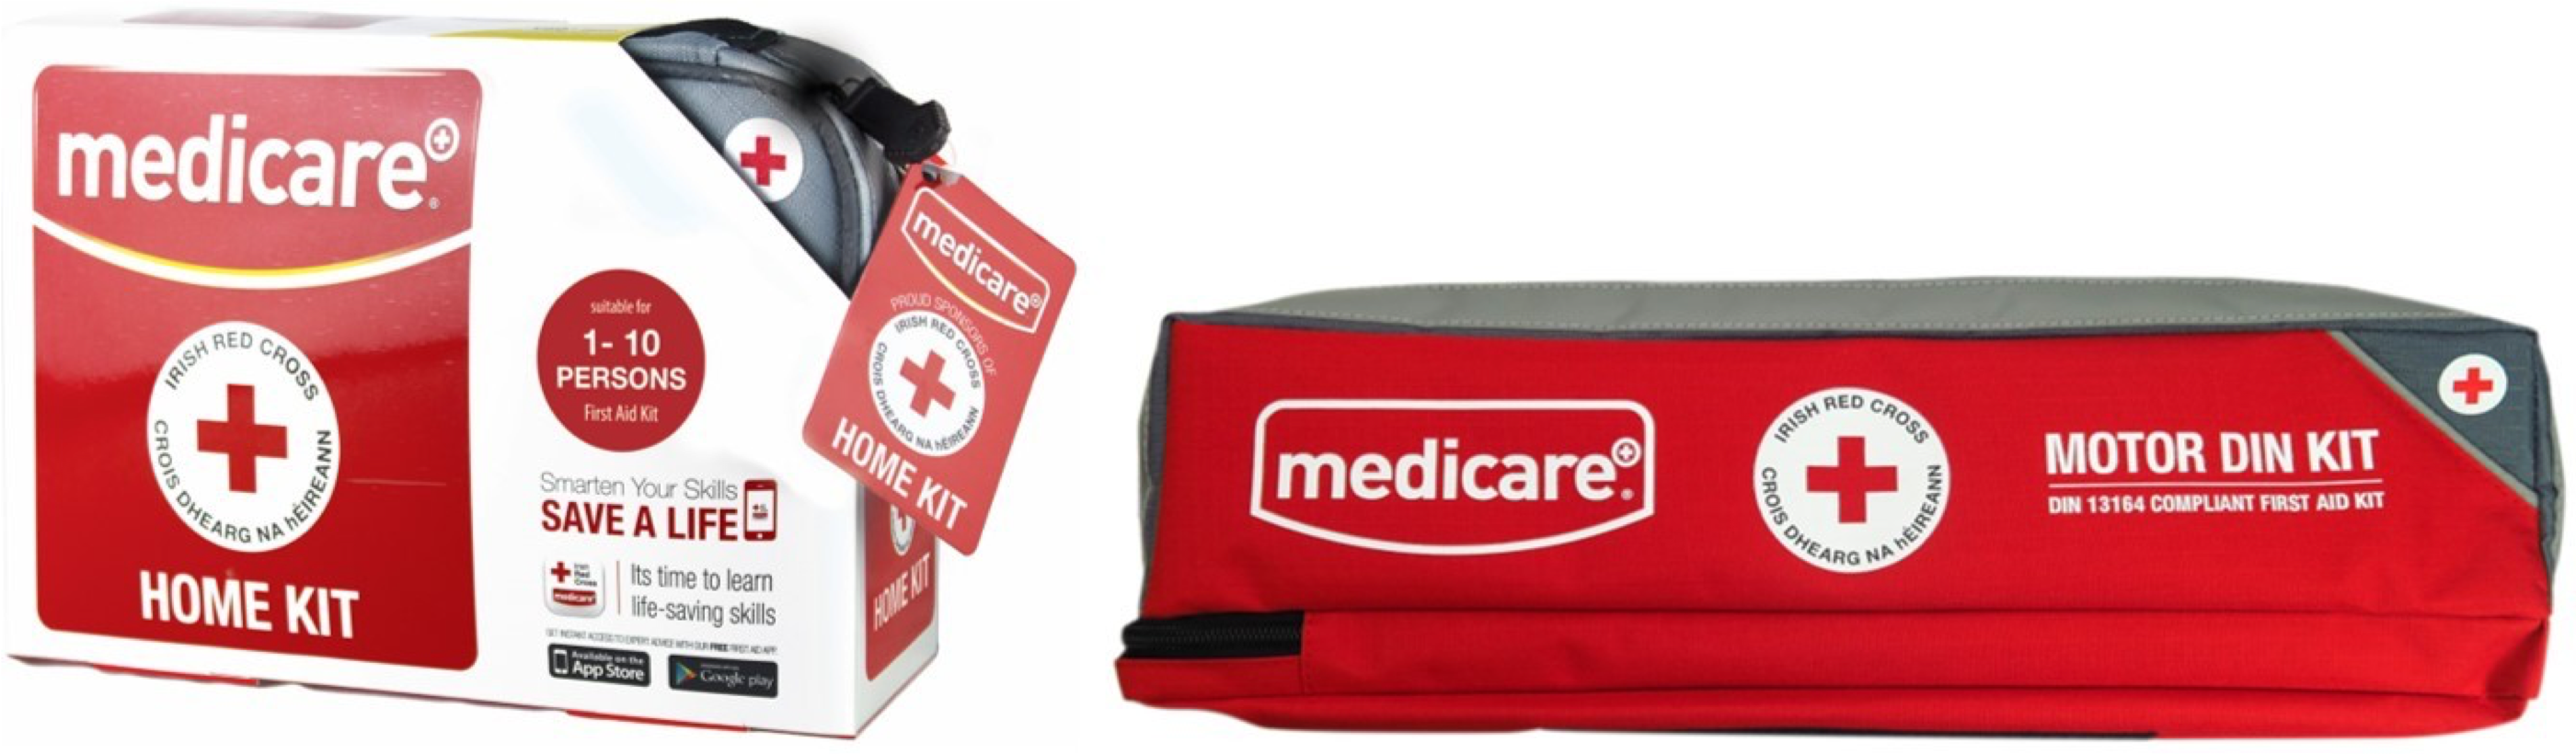 Medicare First Aid Kits Motor and Home